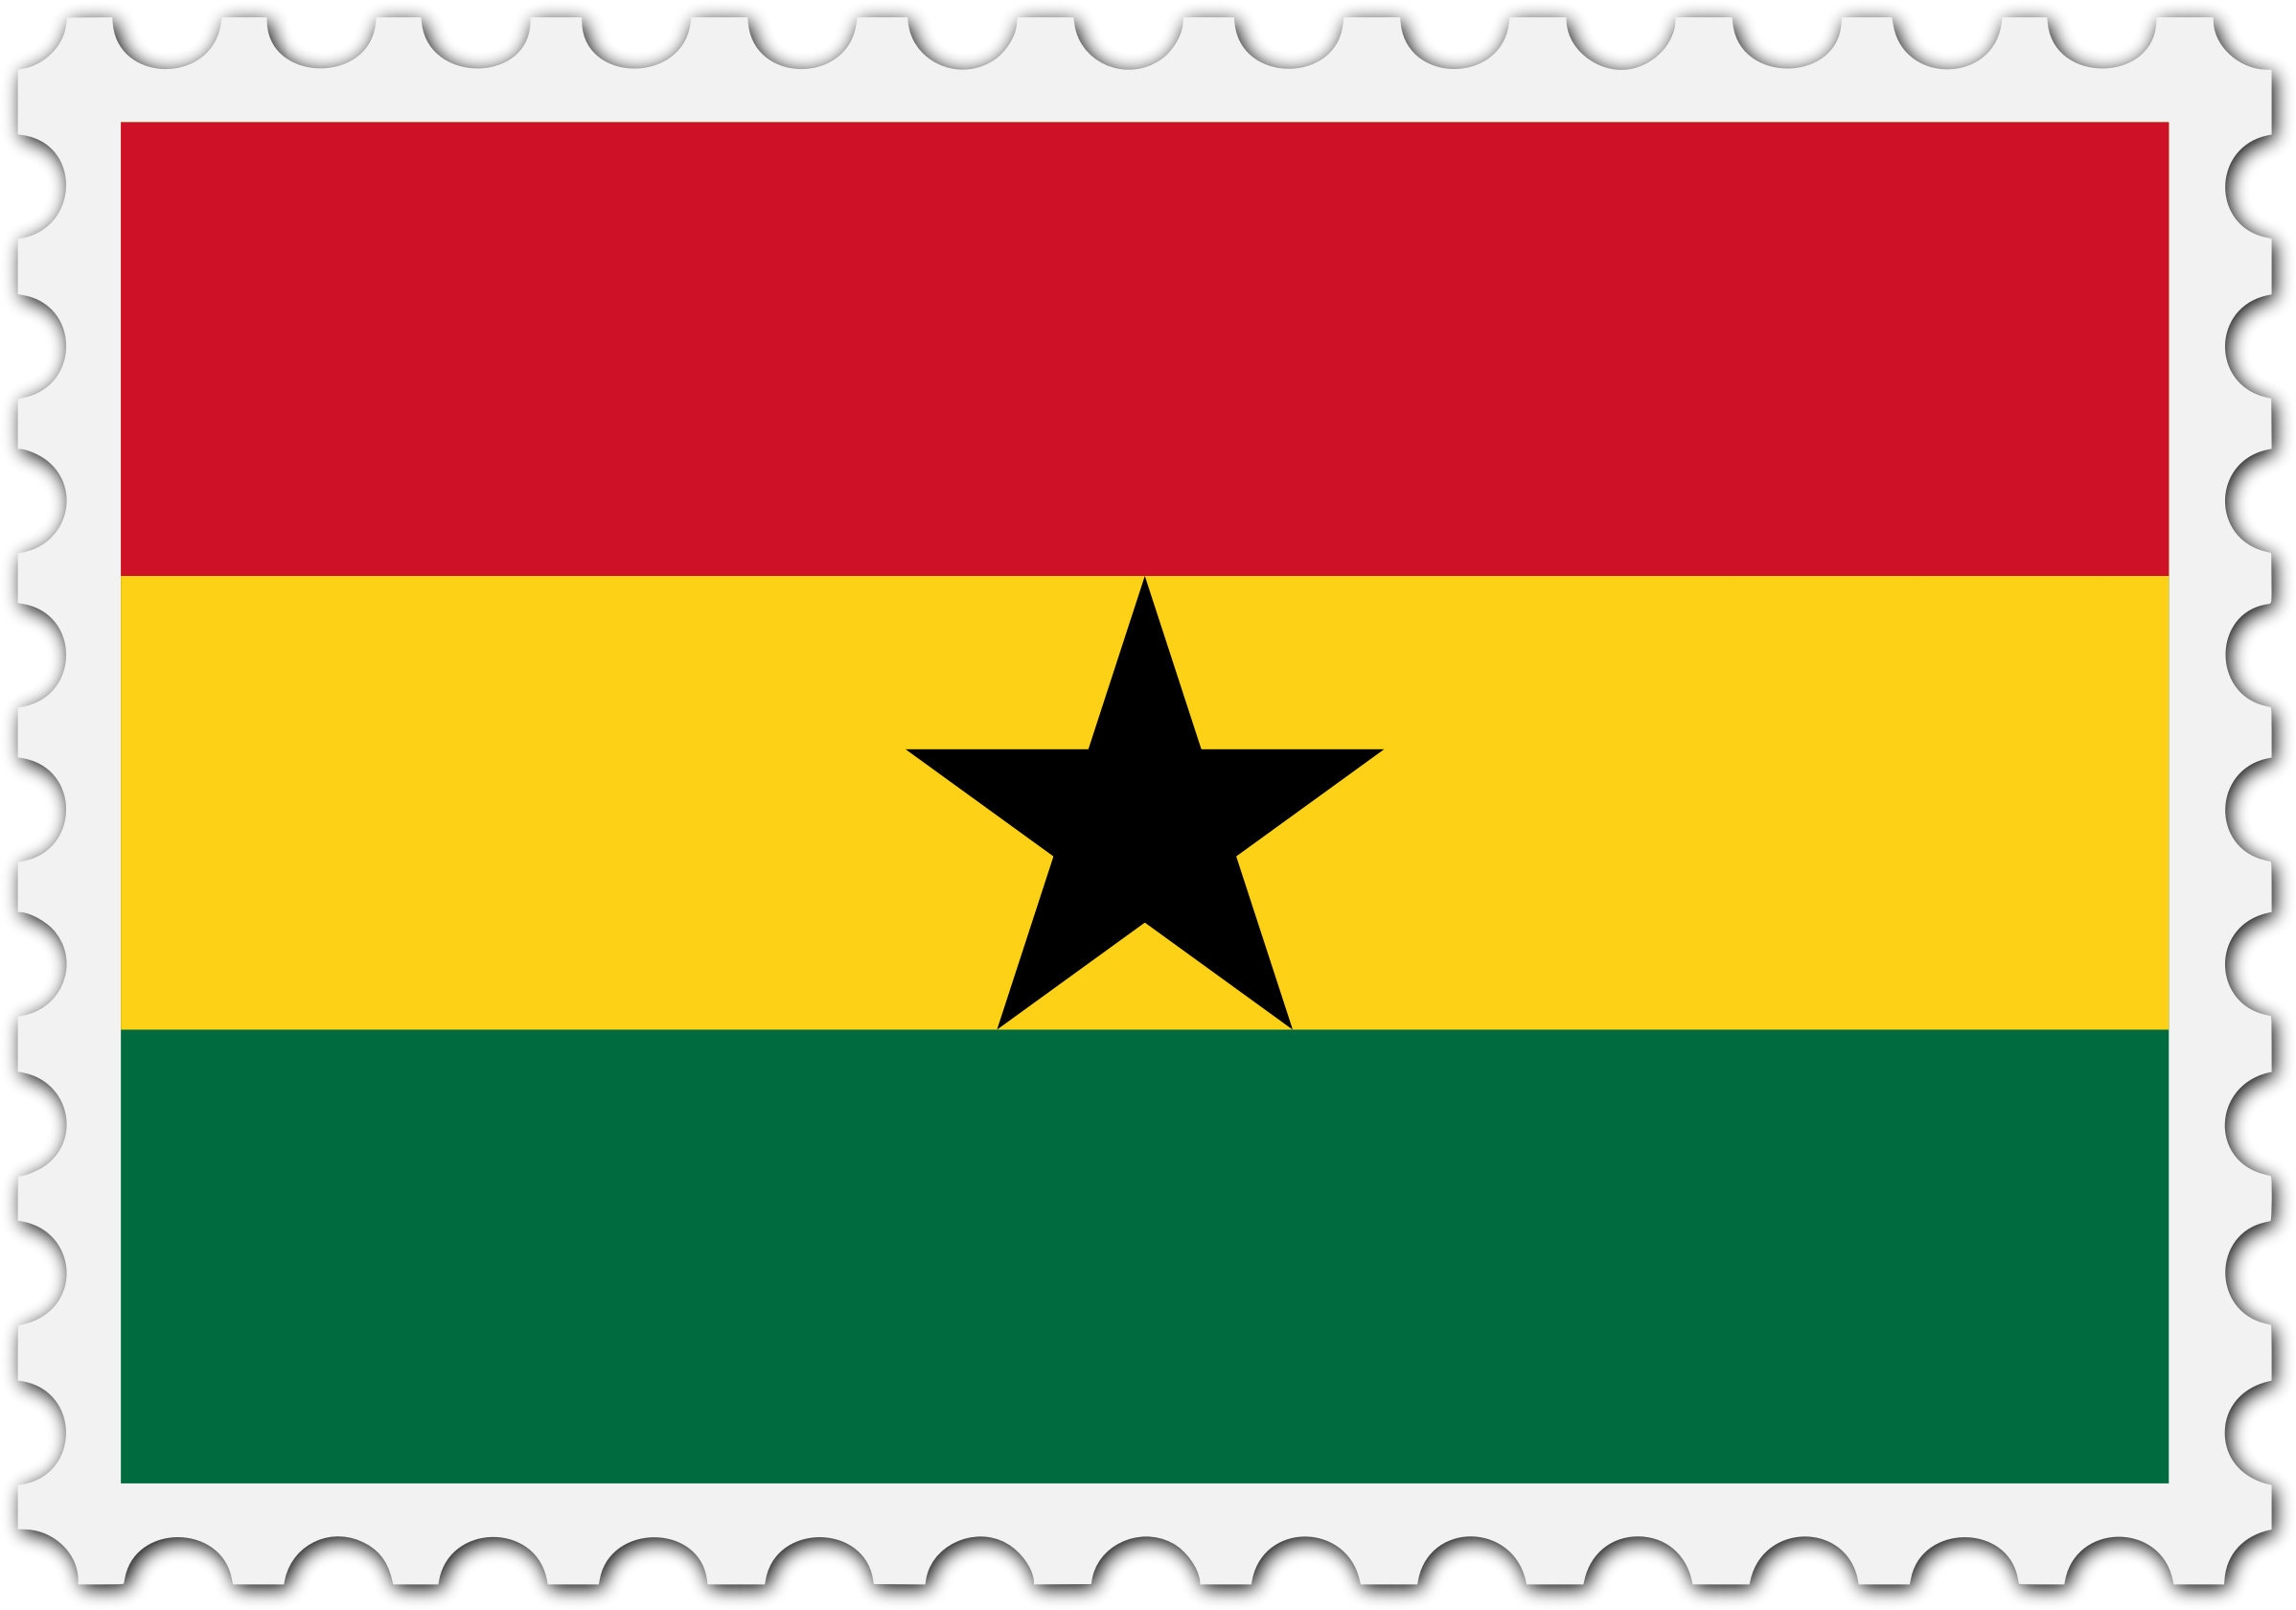 Ghana flag stamp by Firkin